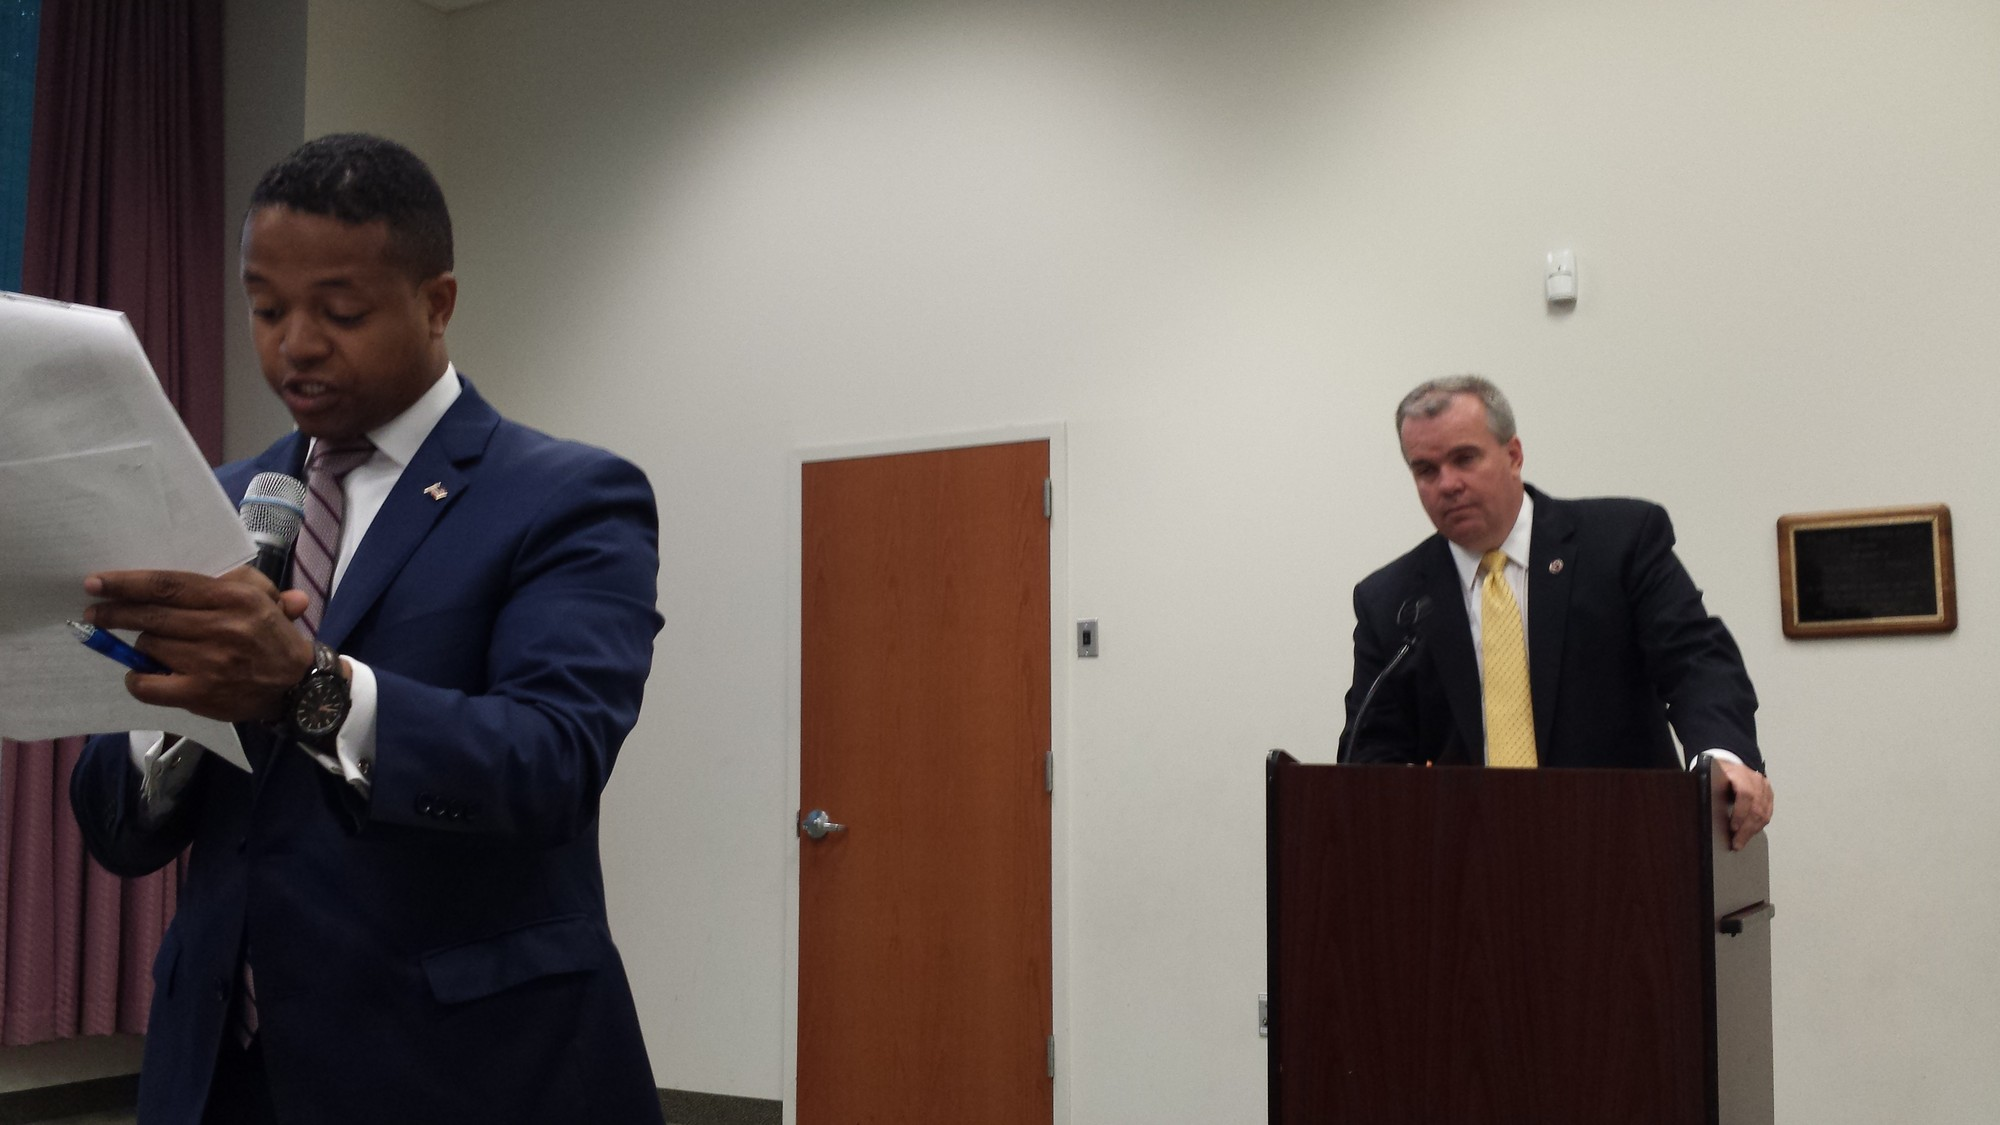 County Legislator Carrie Solages (D-Elmont), left, addressed community members at a meeting he hosted at the Elmont Library on June 3 as Acting NCPD Commissioner Thomas Krumpter looked on.